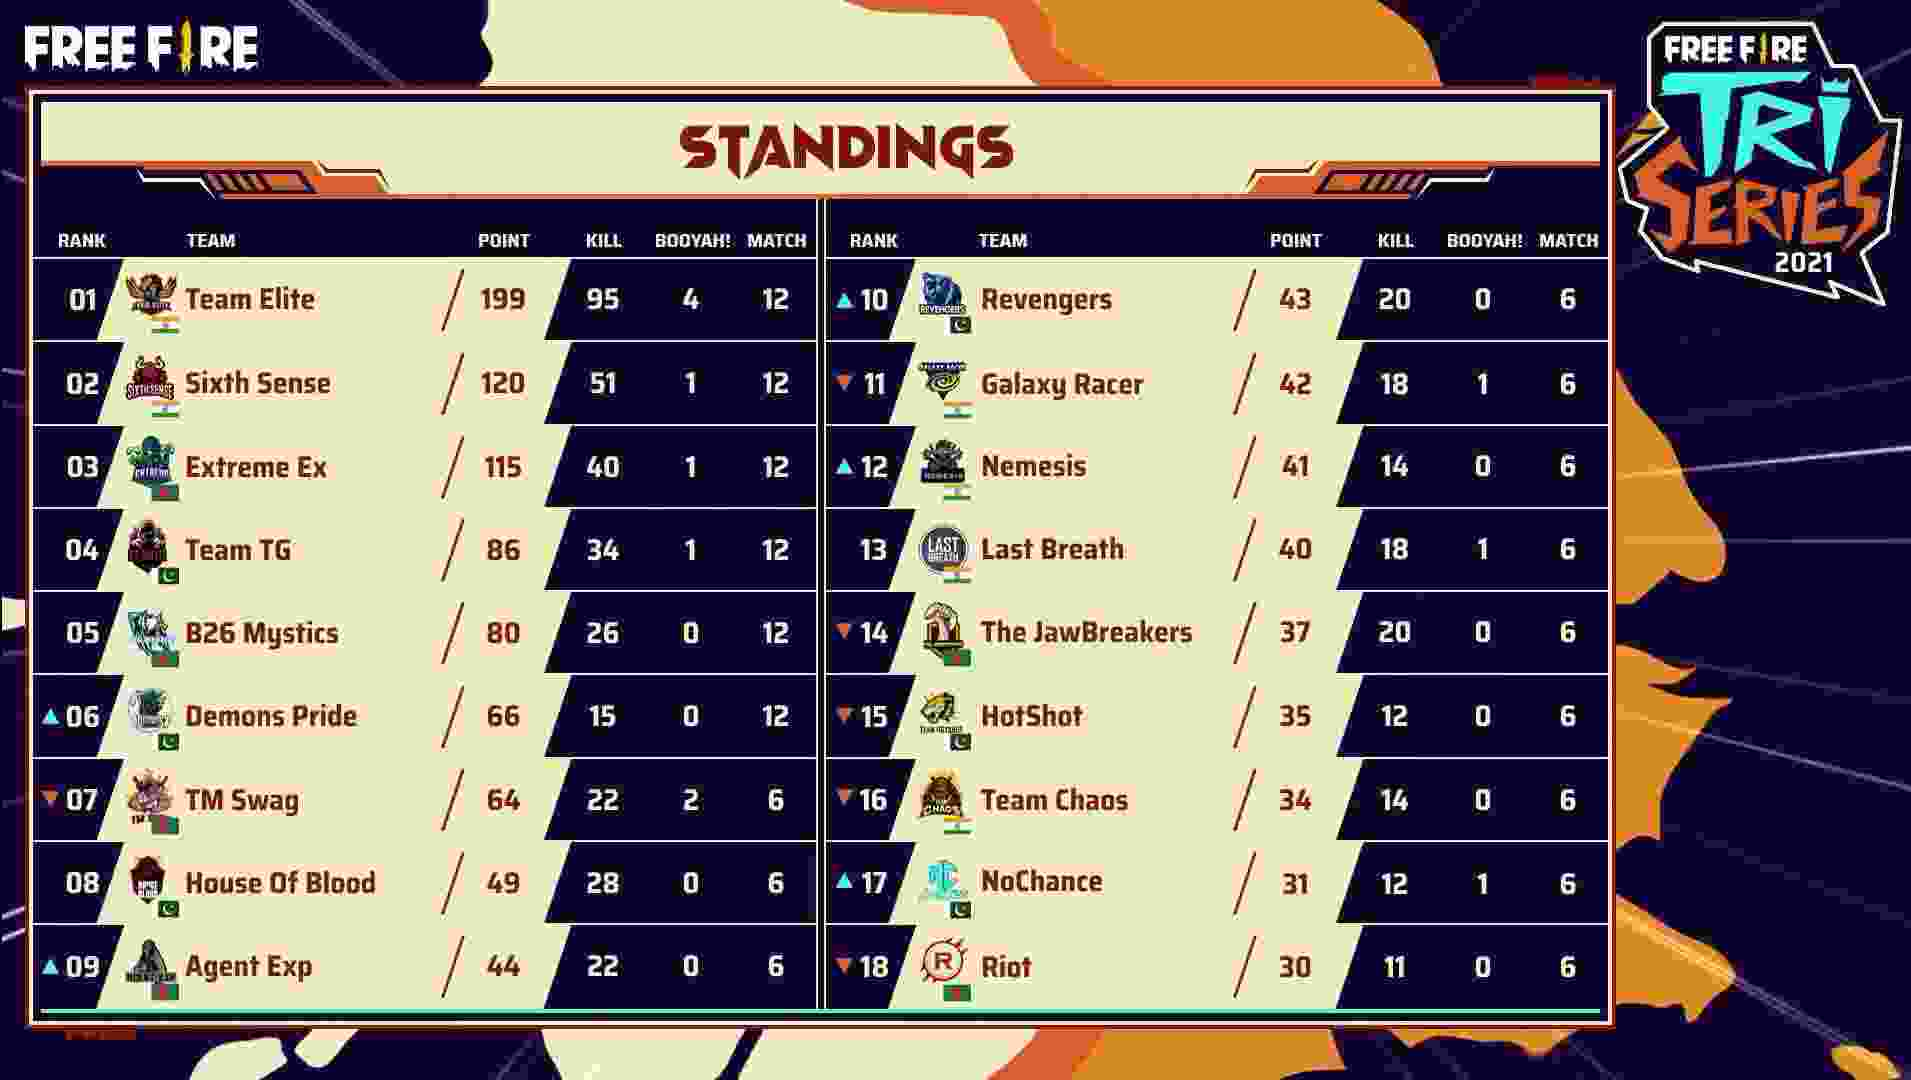 Free Fire Tri-Series Day 2: Overall standings